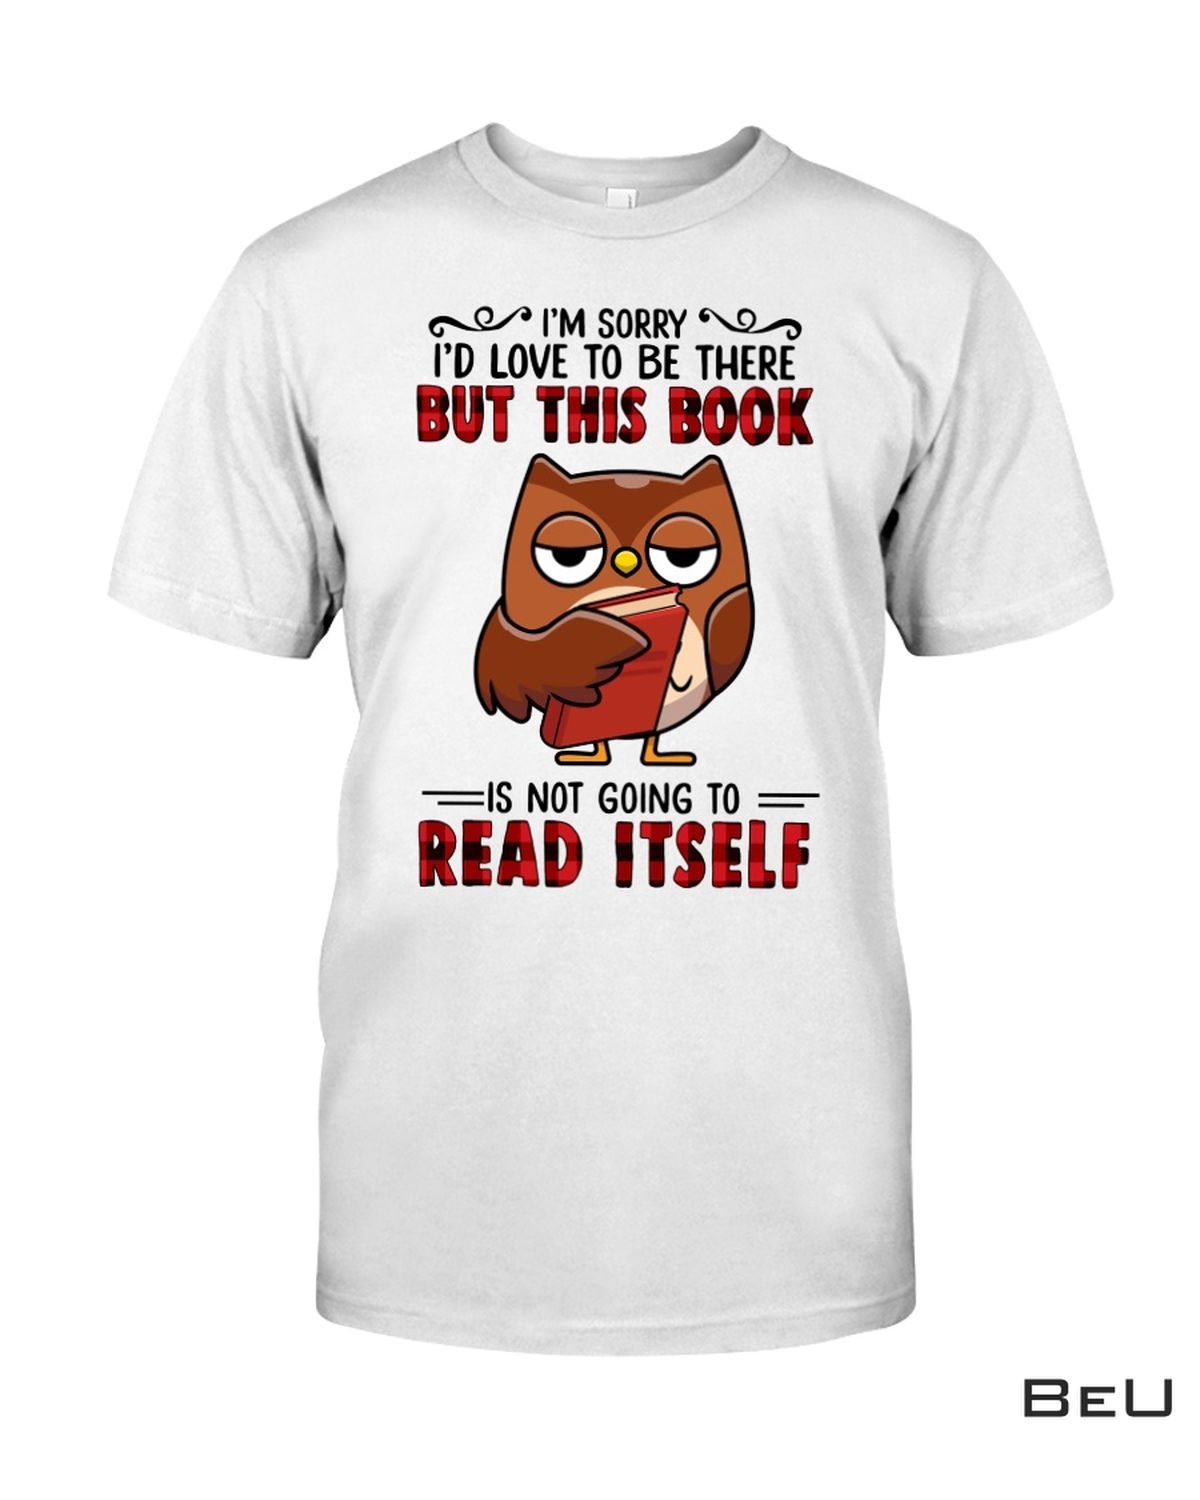 Owl I'm Sorry I'd Love To Be There But This Book Is Not Going To Read Itself Shirt, hoodie, tank top